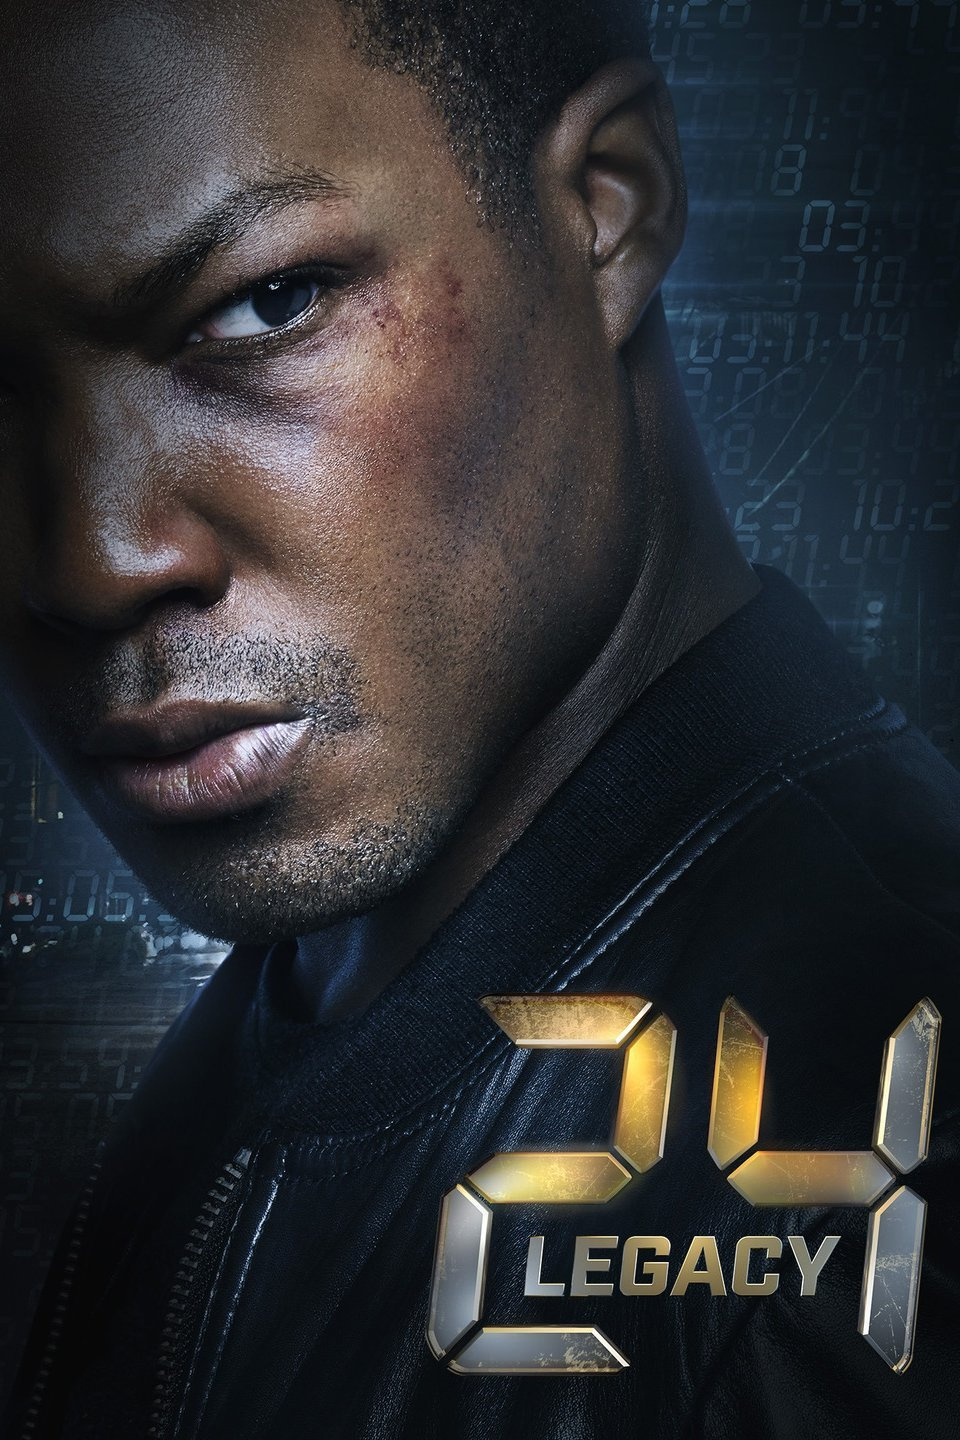 24 Legacy Season 1 Episode 8 Download 480p WEB-DL 150MB